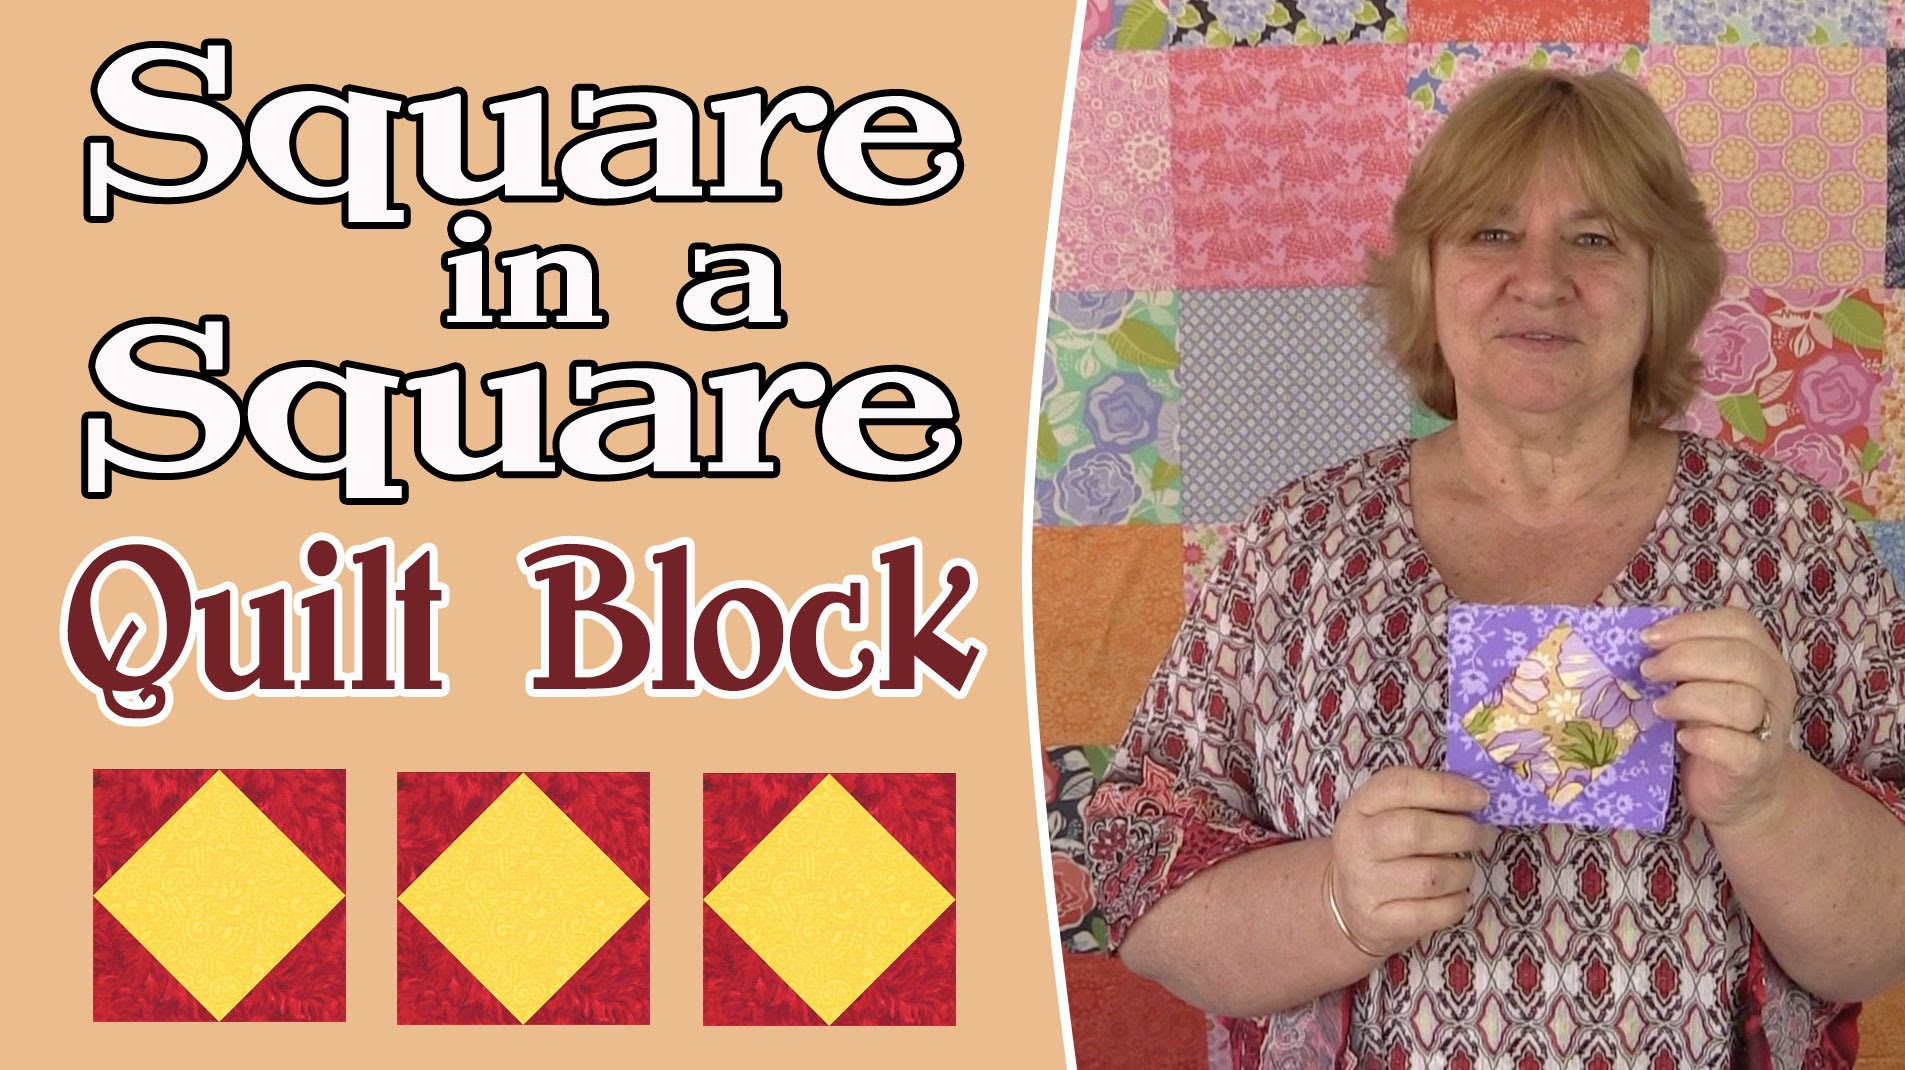 Quilting Blocks: Square in a Square Quilt Block Tutorial